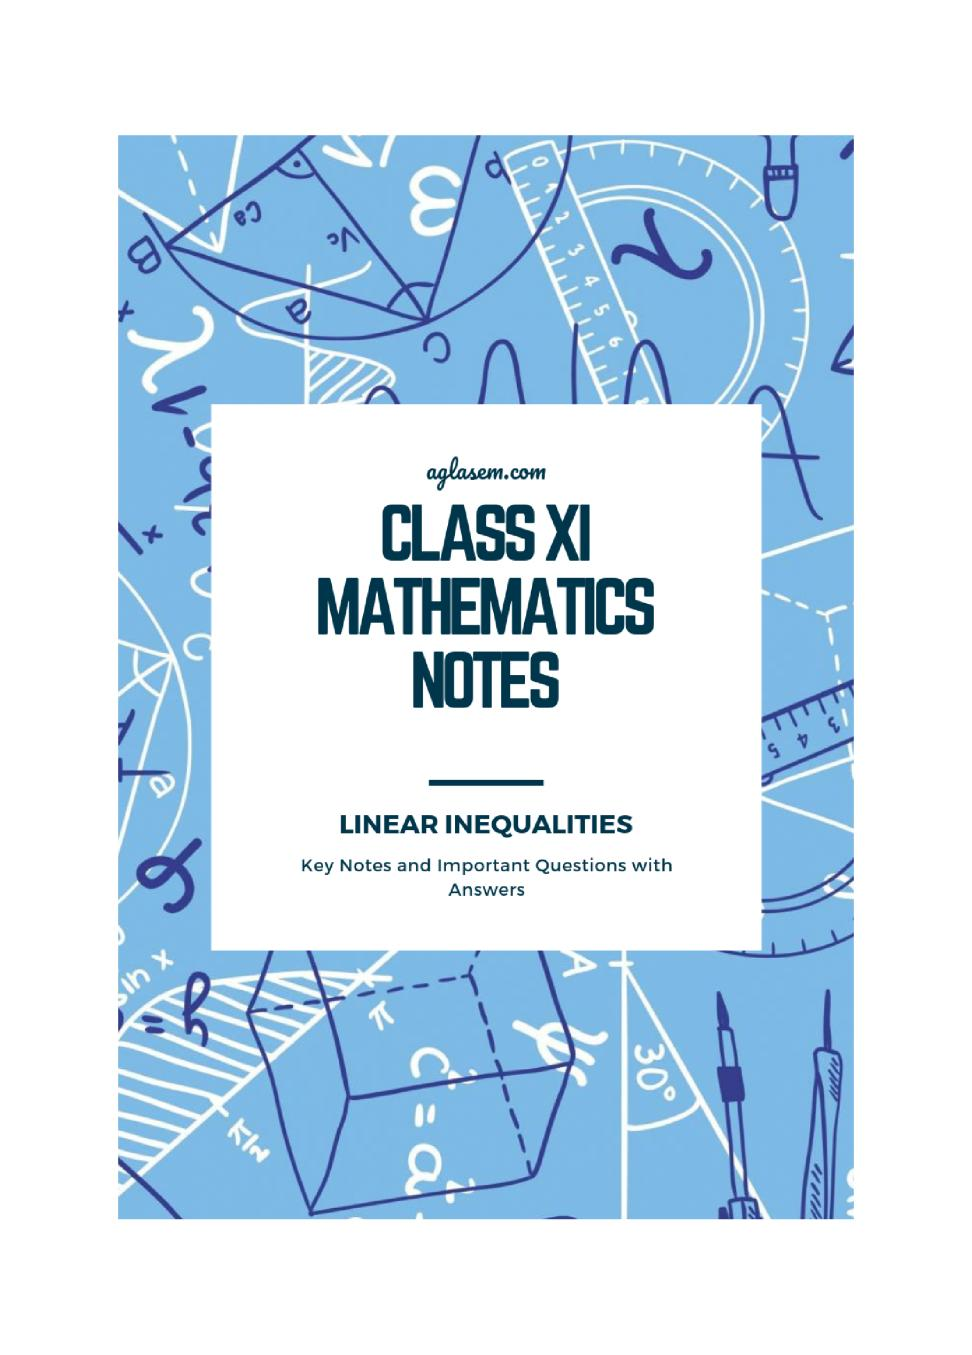 Class 11 Maths Notes for Linear Inequalities